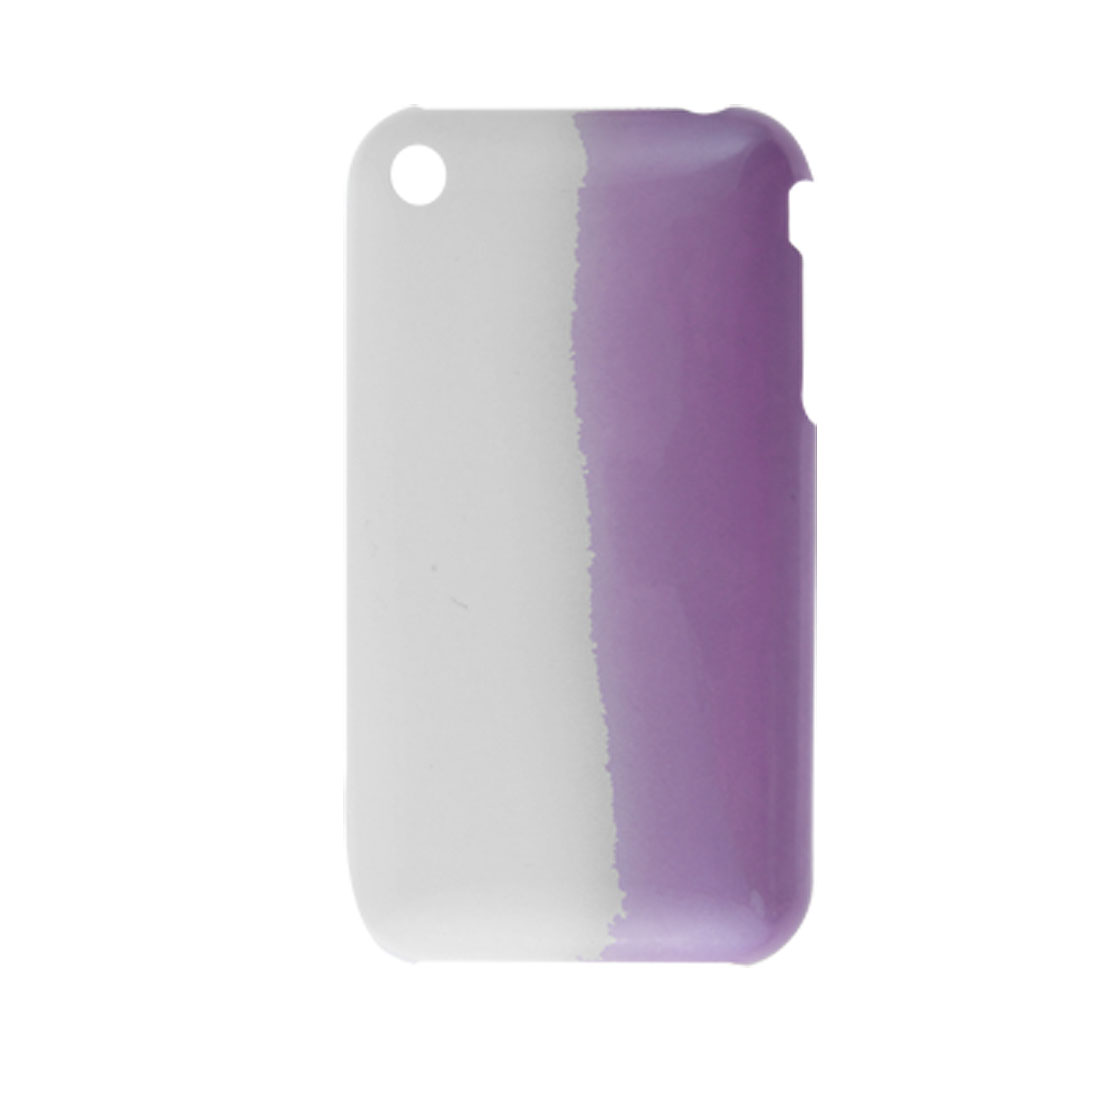 White Purple Hard Plastic Shell Cover for iPhone 3G